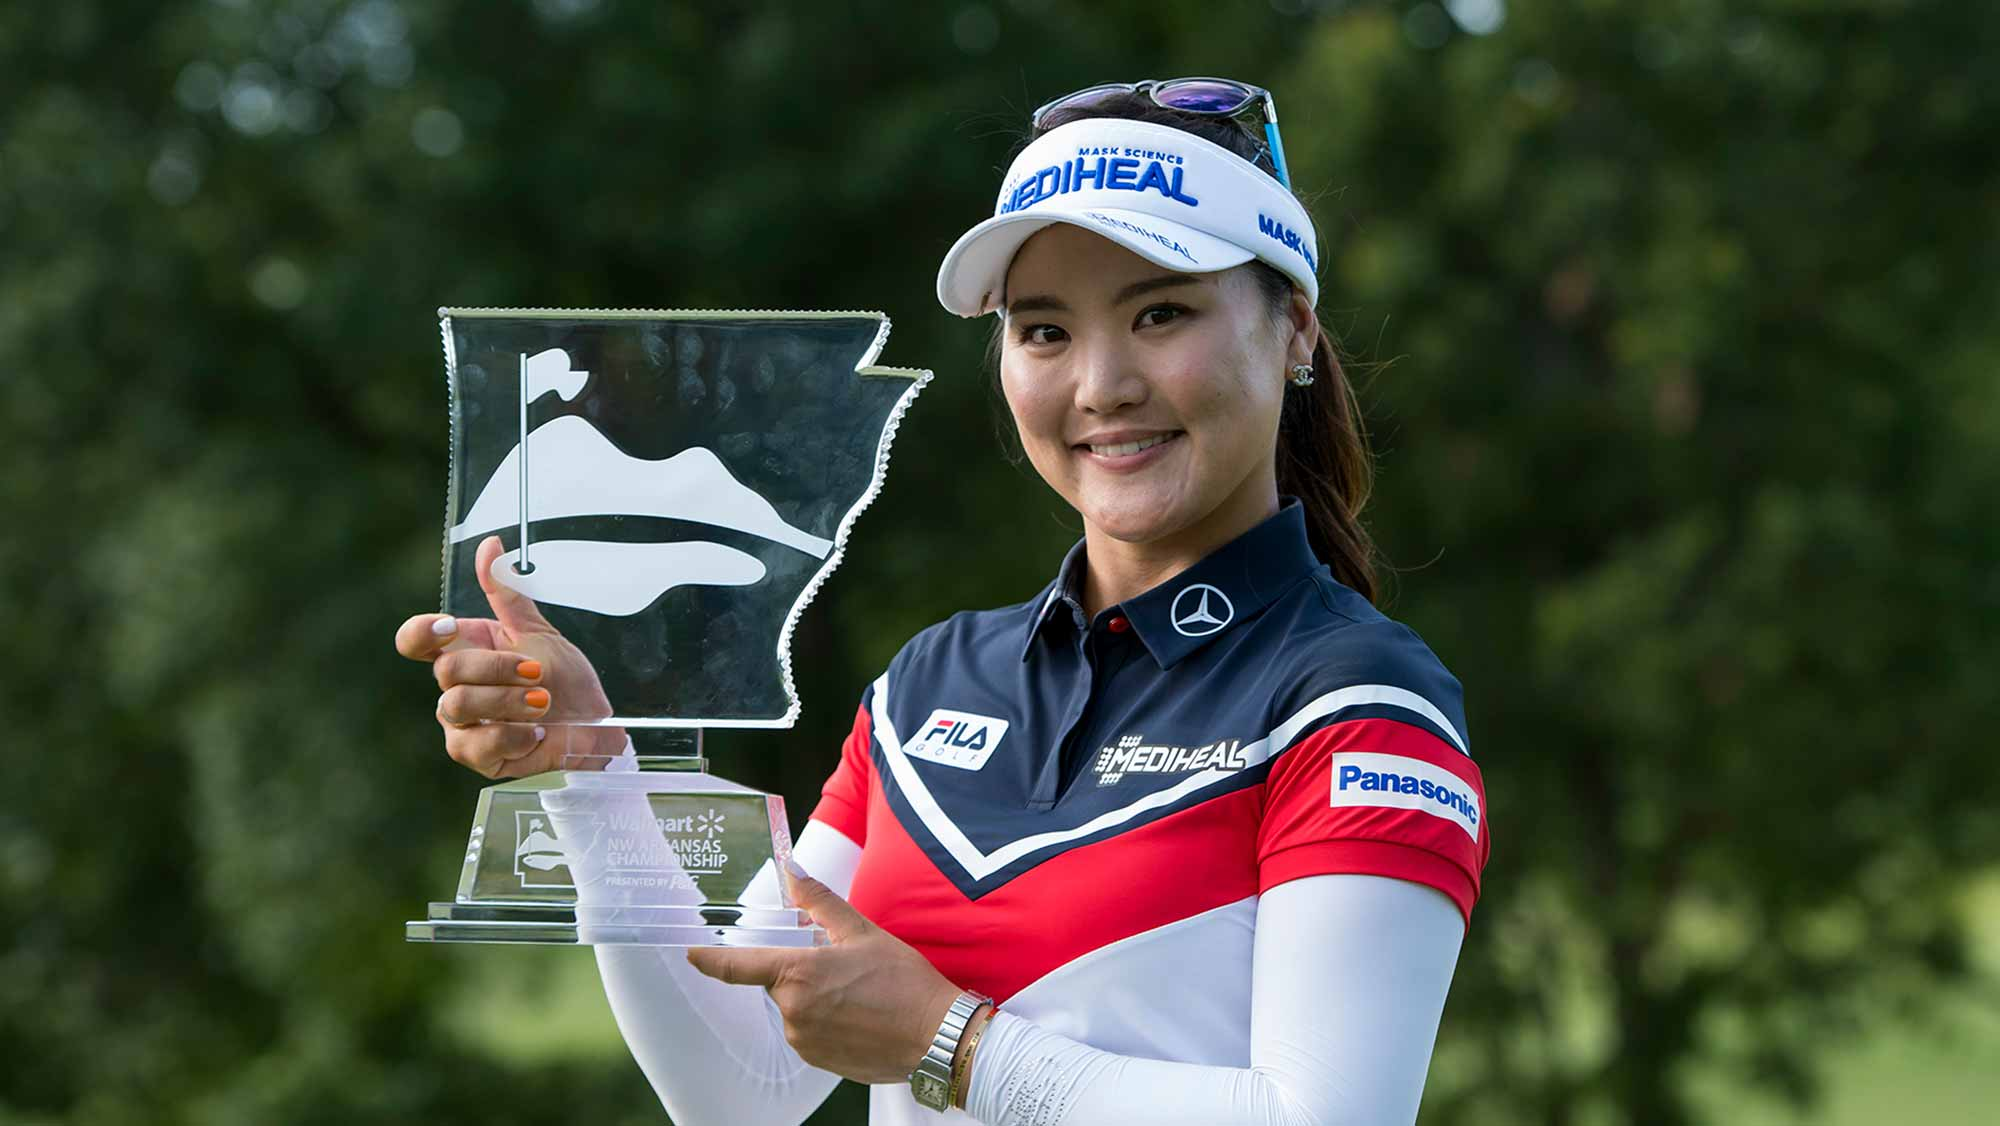 So Yeon Ryu Poses With The Trophy After Winning the 2017 Walmart NW Arkansas Championship presented by P&G